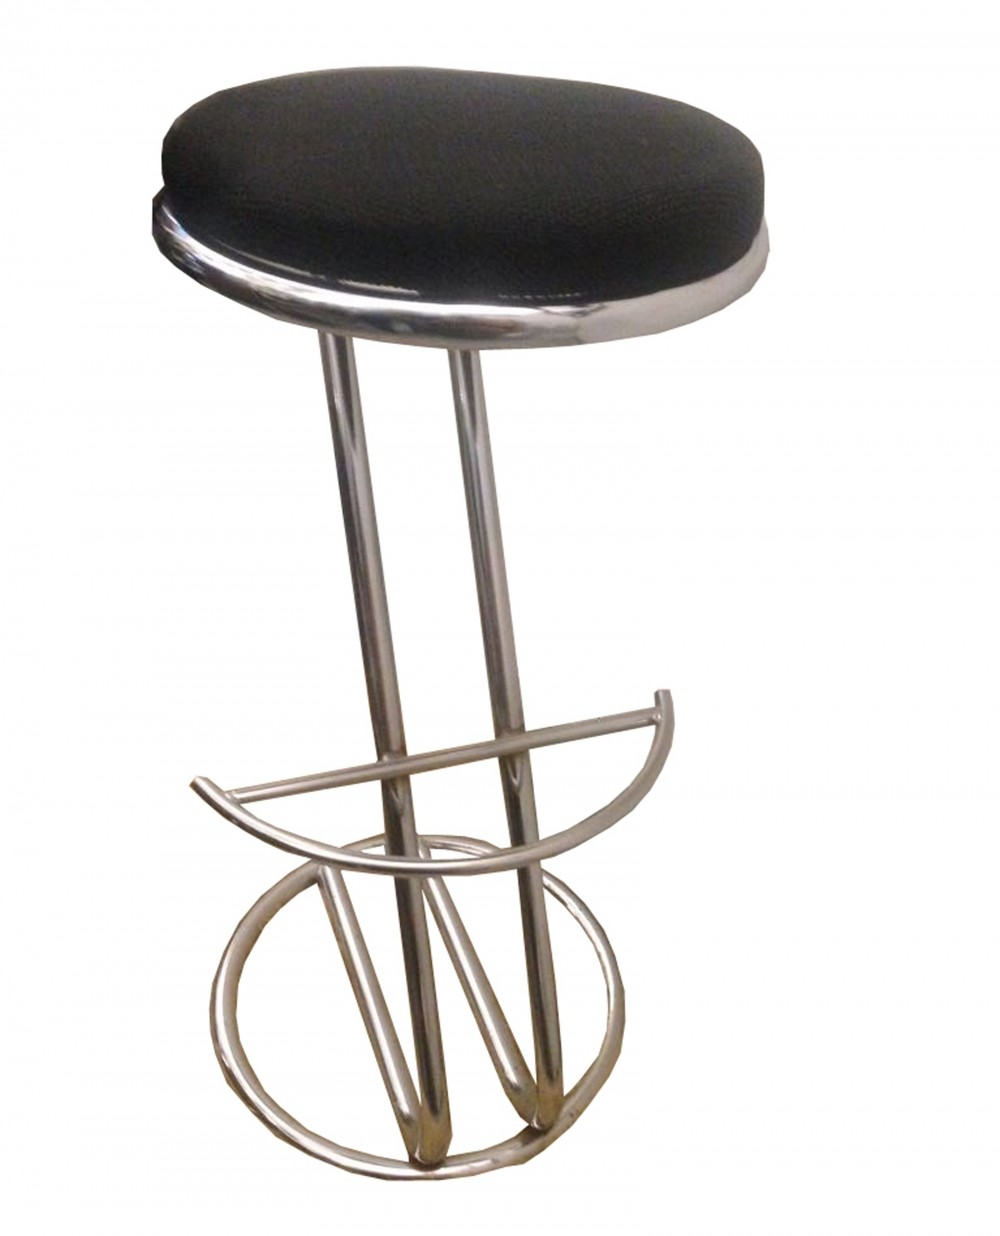 1970s Steel Stool With Black Fabric Seat 75846